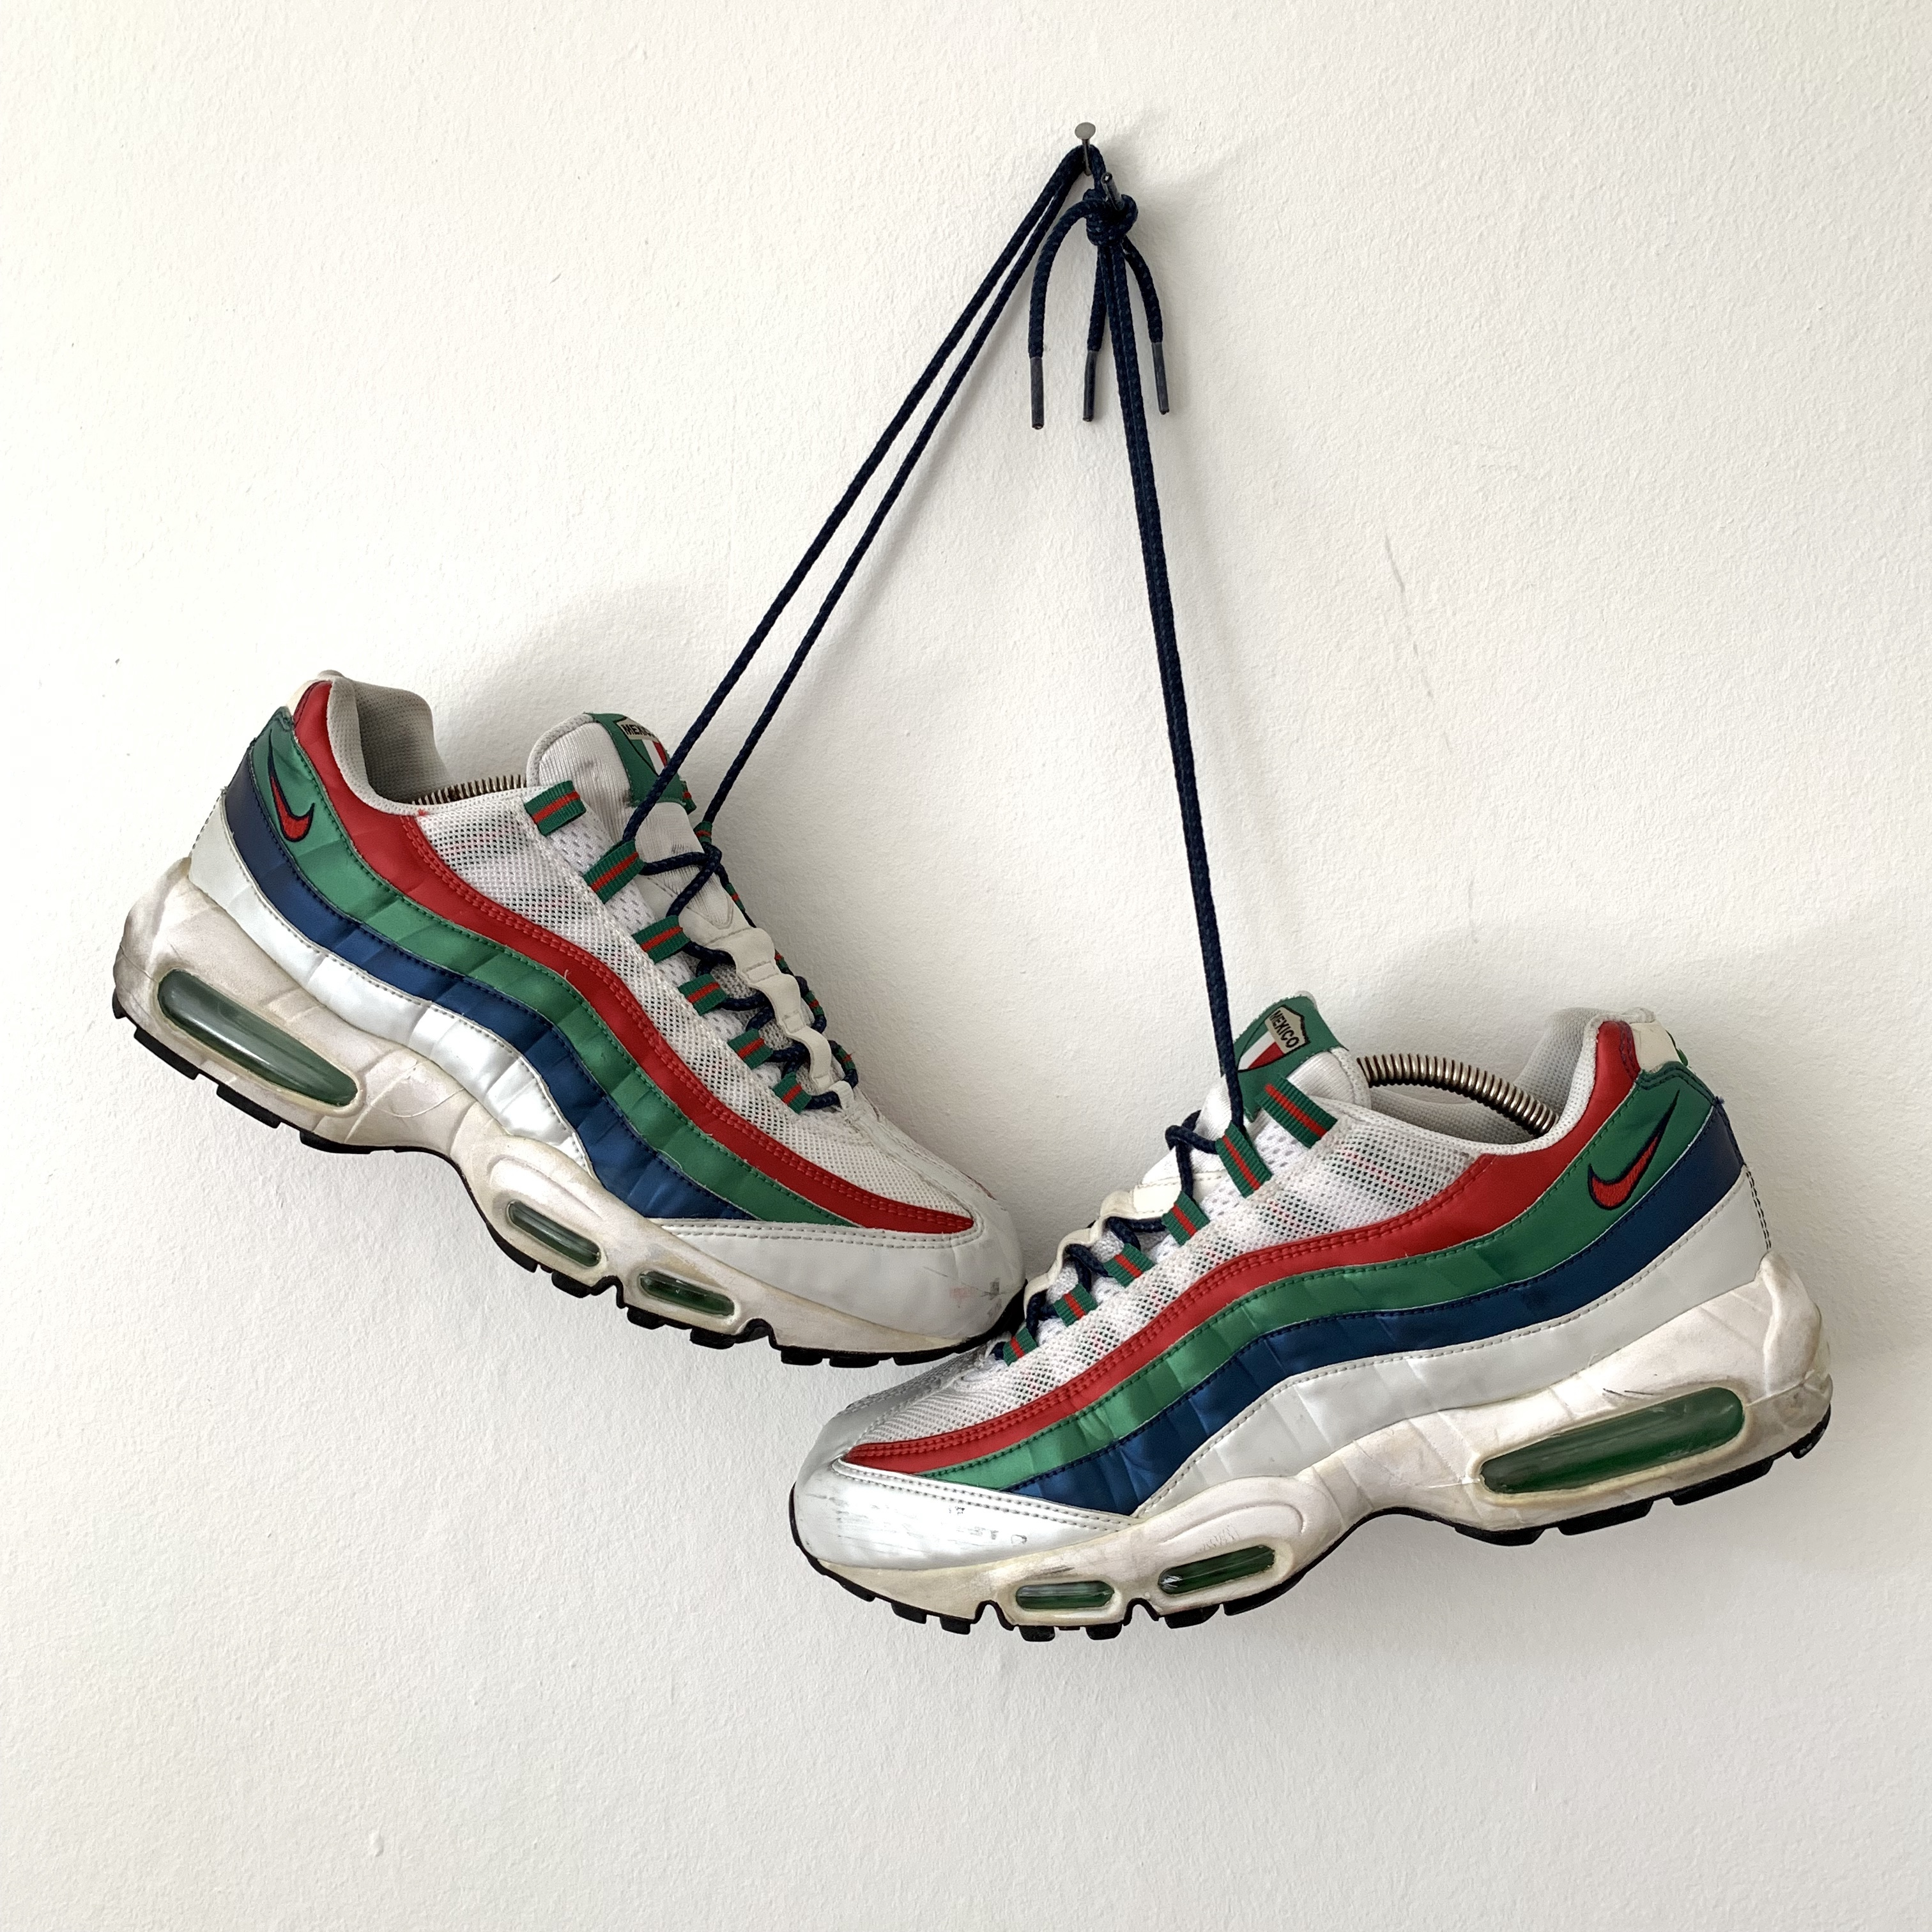 2005 Nike Air Max 95 Mexico World Cup Uk7.5 Depop